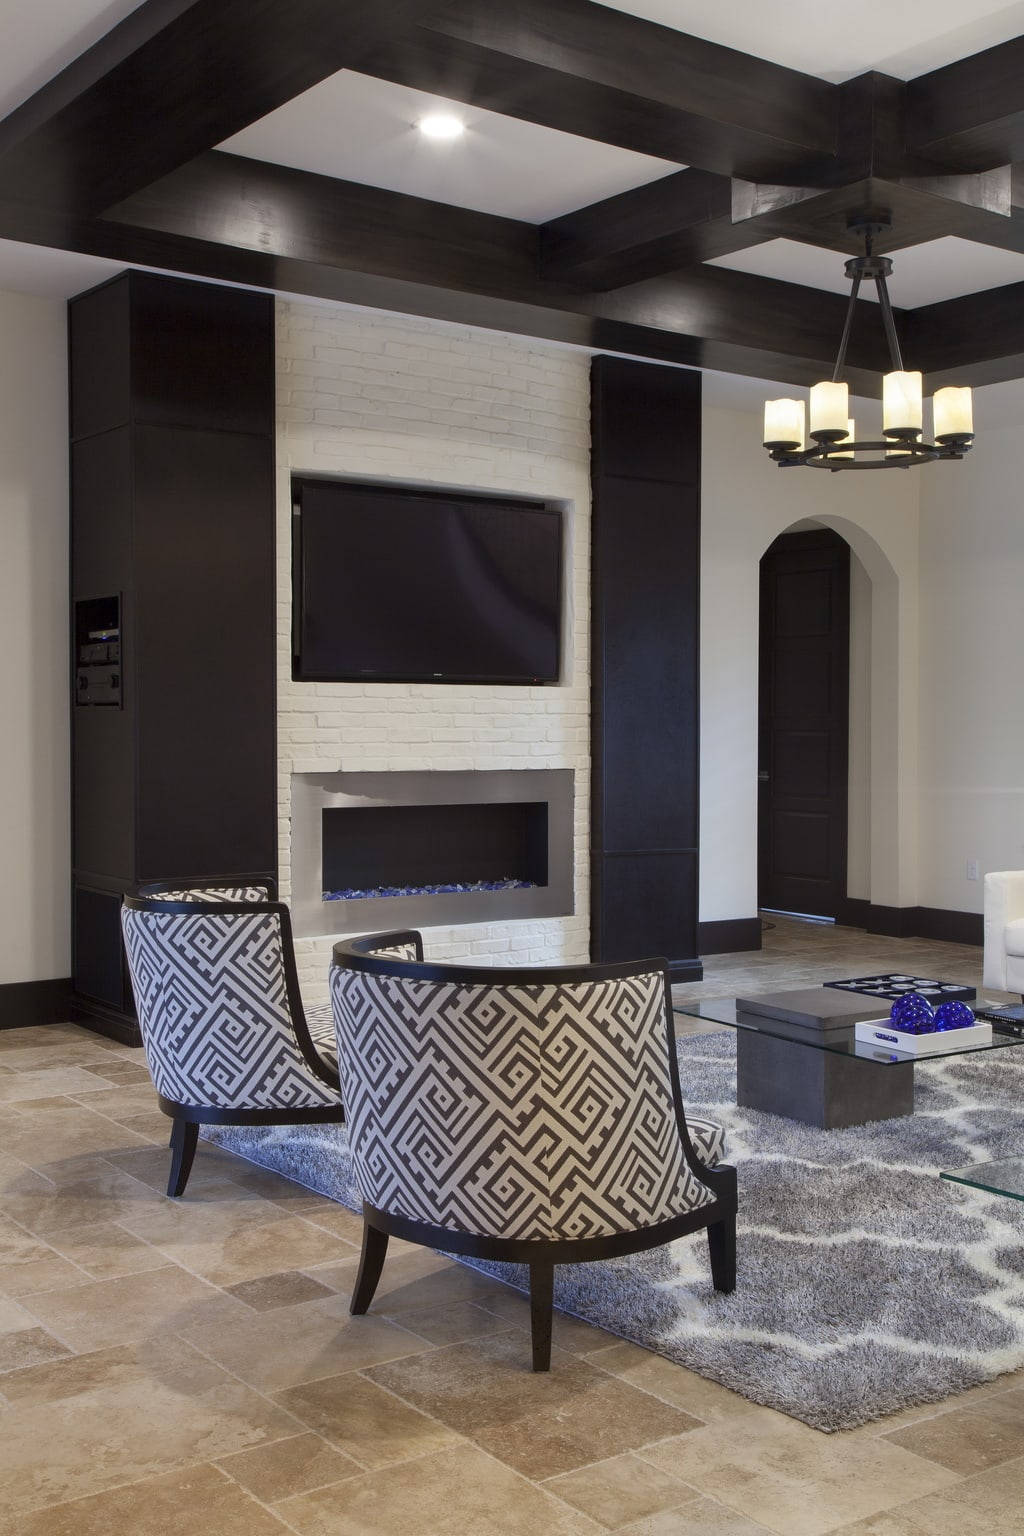 Choosing the Right Fireplace For Your Living Space